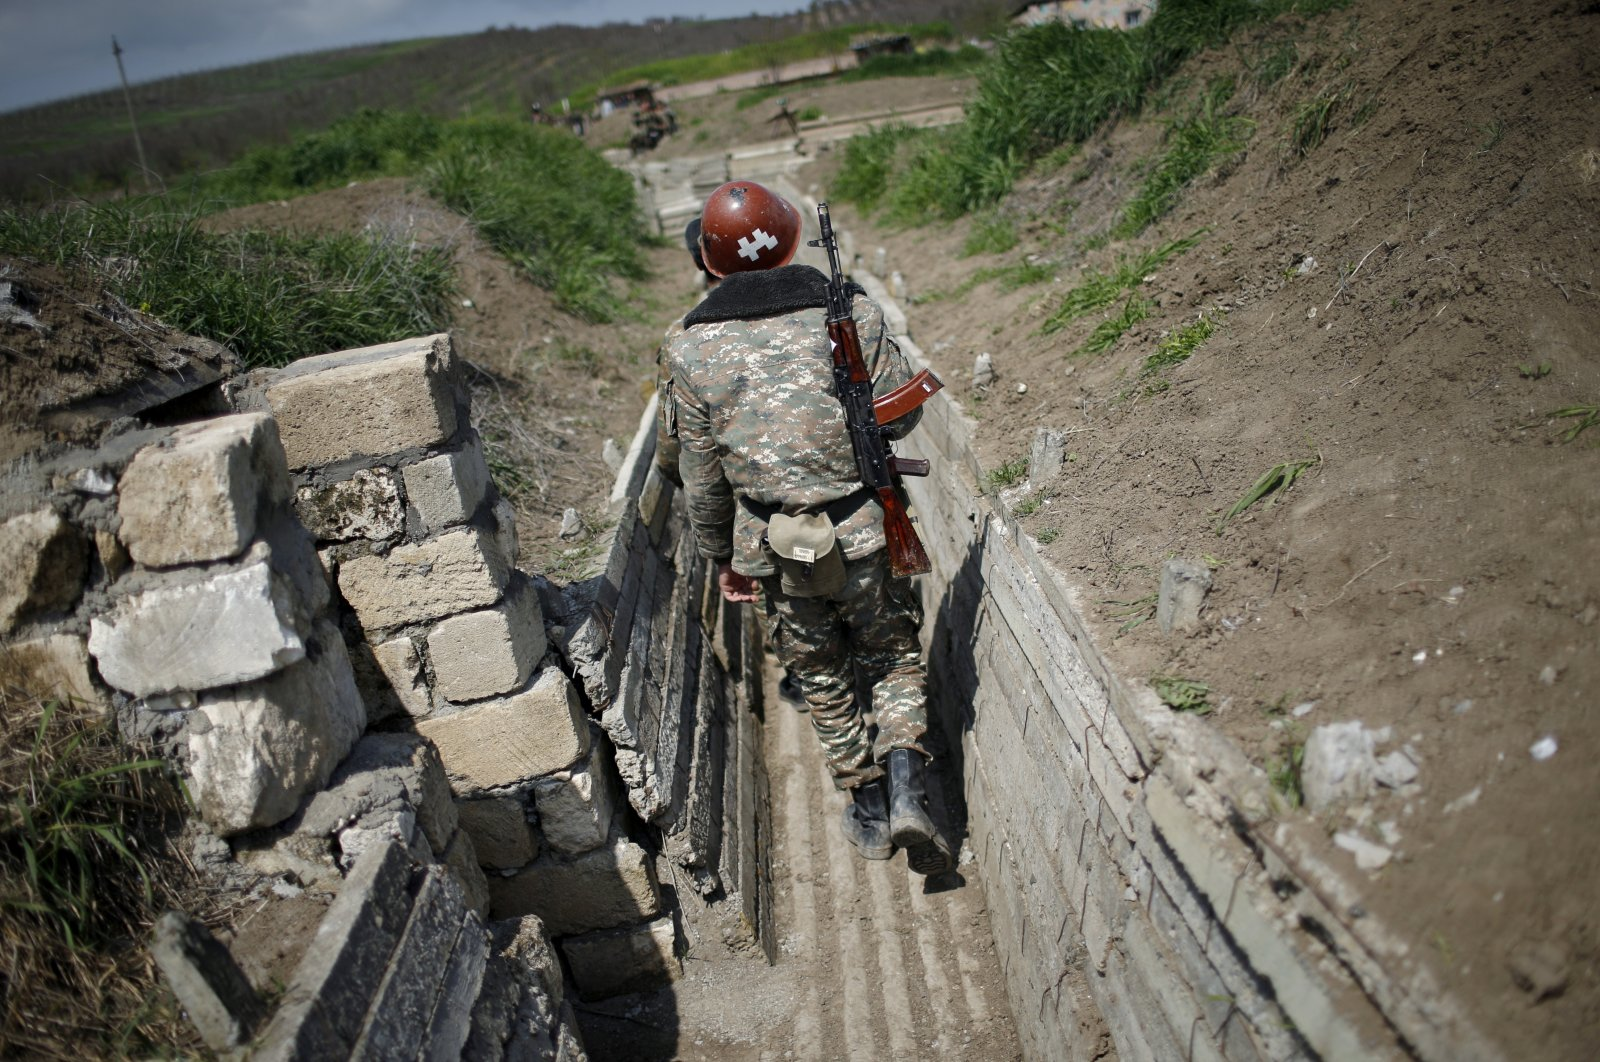 Armenian soldiers walk in a trench at their position near Nagorno-Karabakh's boundary, April 8, 2016. (Reuters File Photo)